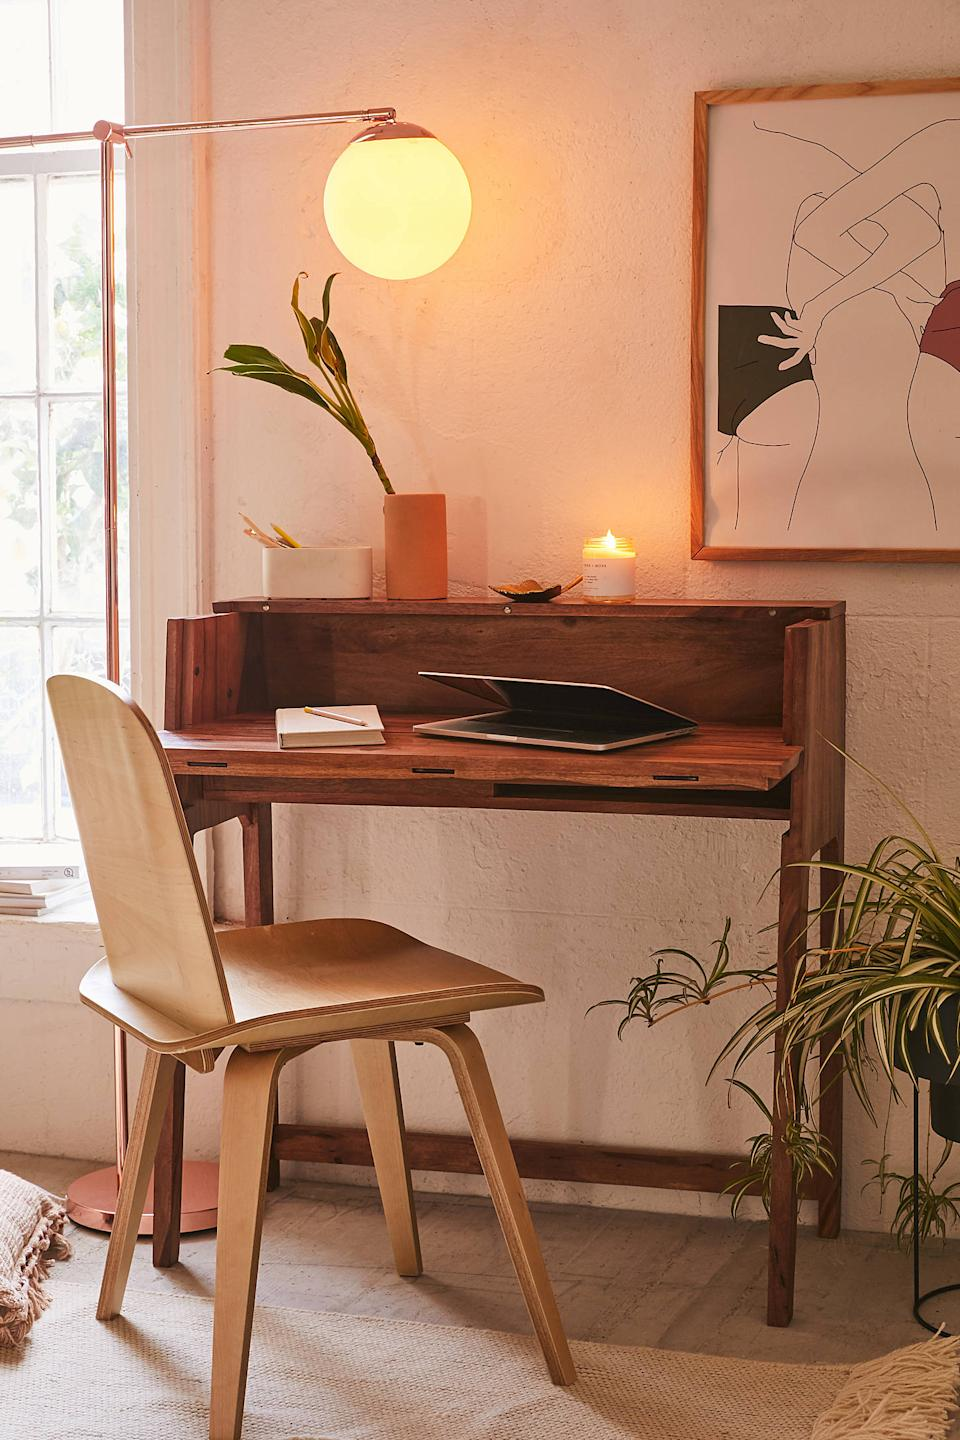 """<h3>Urban Outfitters Mid-Century Fold Out Desk<br></h3> <br>Don't sacrifice style for space by investing in a desk with a solid, durable design that's built to fold up out of the way when not in use.<br><br><strong>Urban Outfitters</strong> Mid-Century Fold Out Desk, $, available at <a href=""""https://go.skimresources.com/?id=30283X879131&url=https%3A%2F%2Fwww.urbanoutfitters.com%2Fshop%2Fmid-century-fold-out-desk"""" rel=""""nofollow noopener"""" target=""""_blank"""" data-ylk=""""slk:Urban Outfitters"""" class=""""link rapid-noclick-resp"""">Urban Outfitters</a>"""